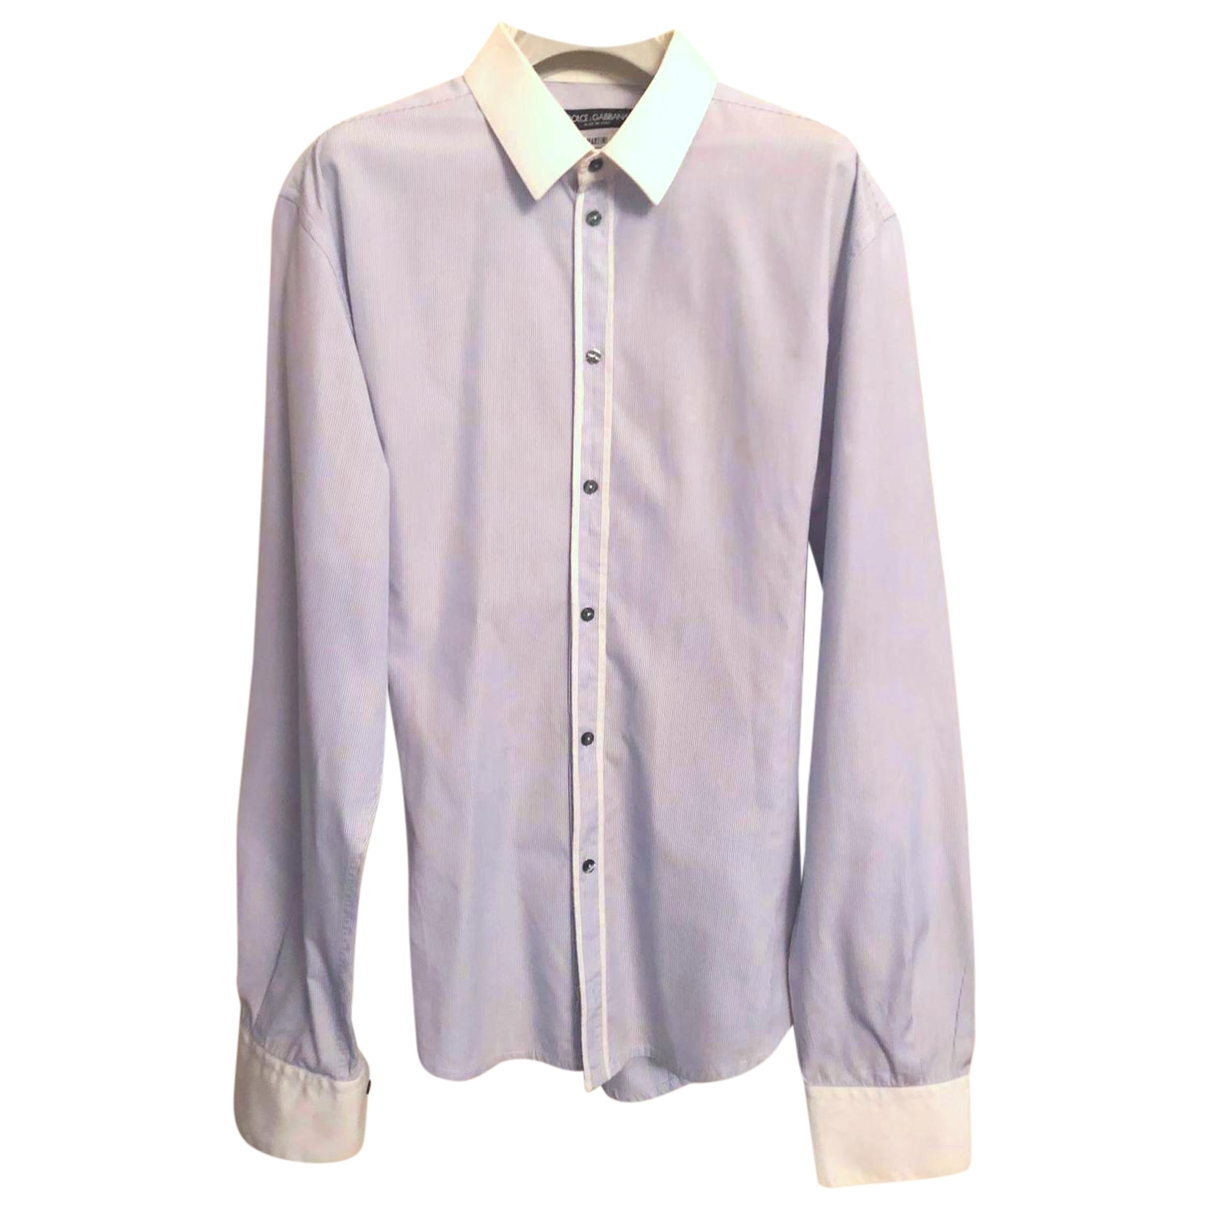 Dolce & Gabbana \N Blue Cotton Shirts for Men 44 EU (tour de cou / collar)